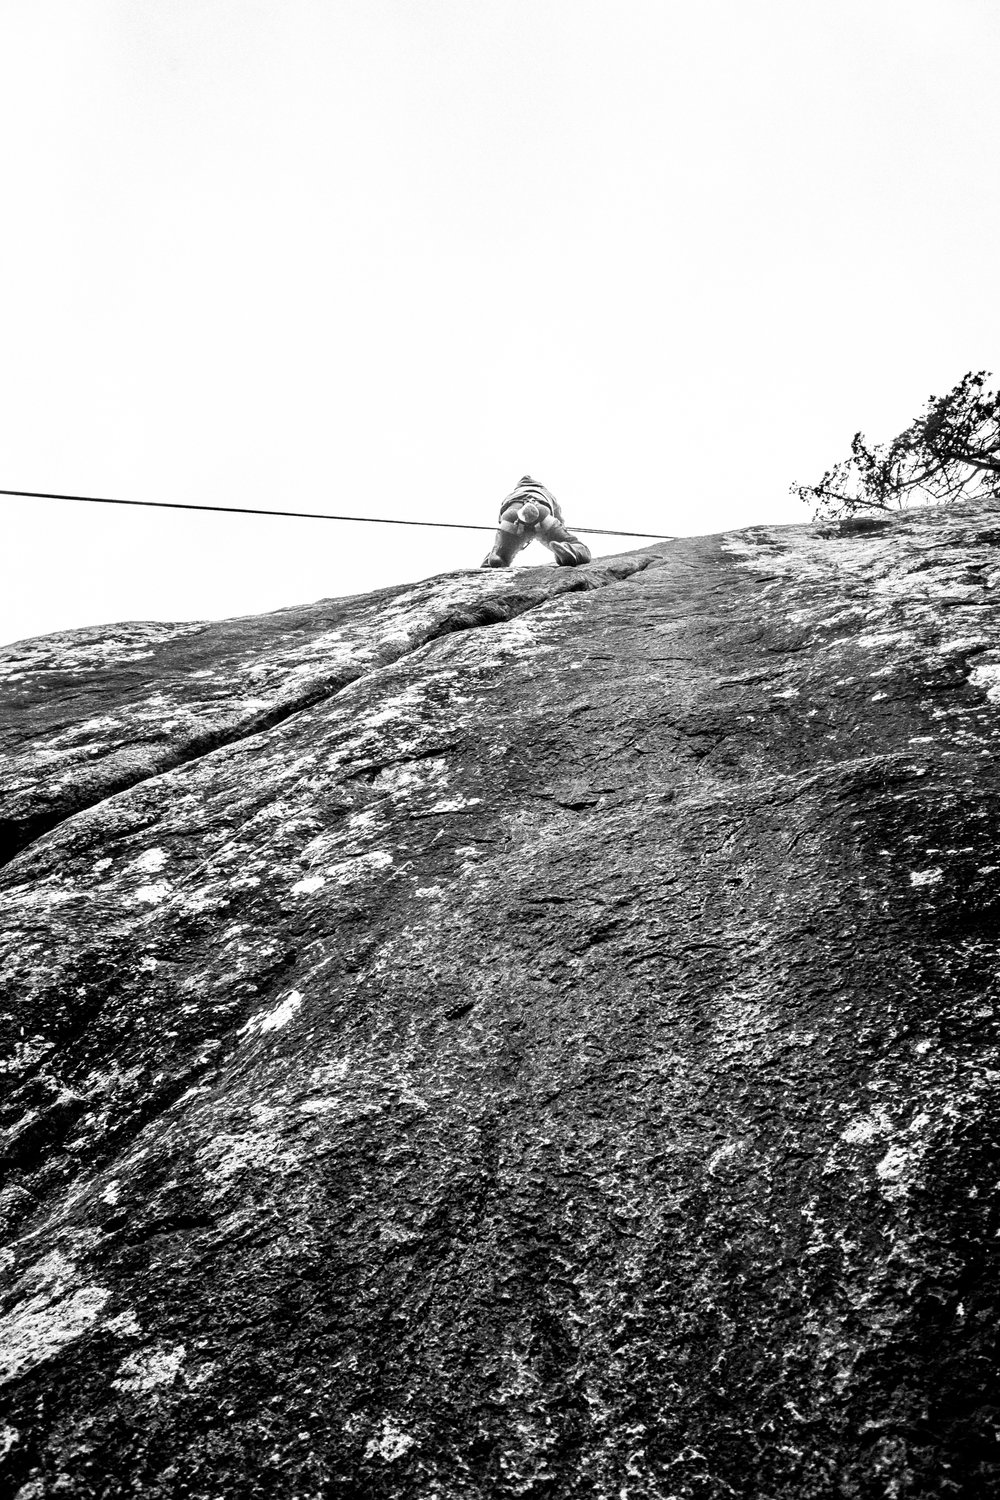 4-22-17 Rock Climbing black & white-13.jpg